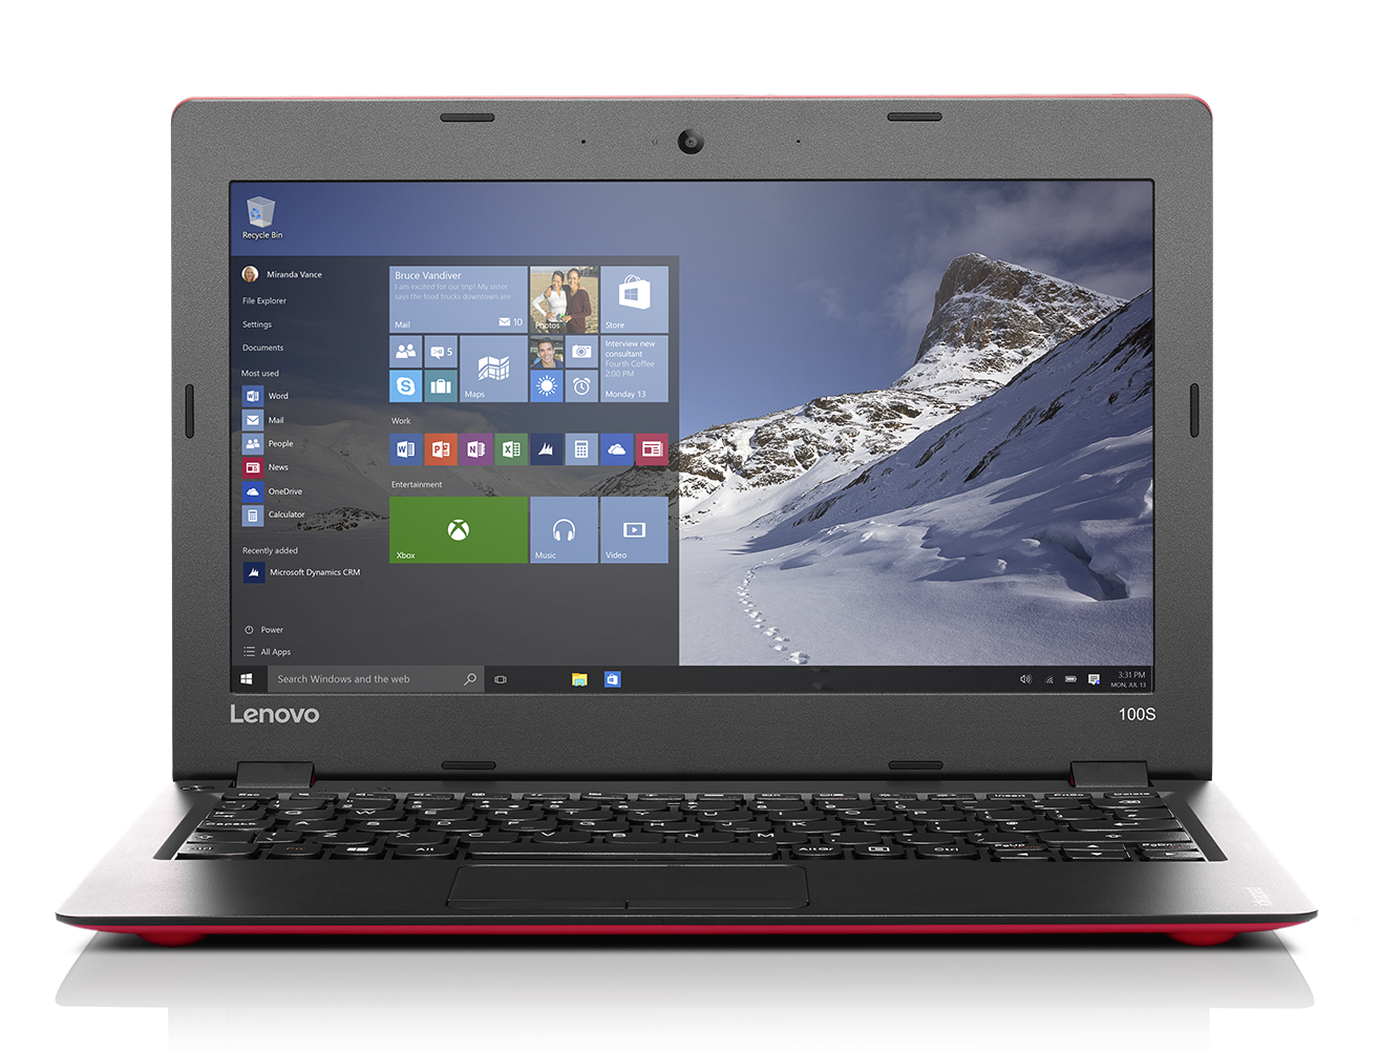 Mossberg Can A 150 Windows Laptop Be Any Good The Verge